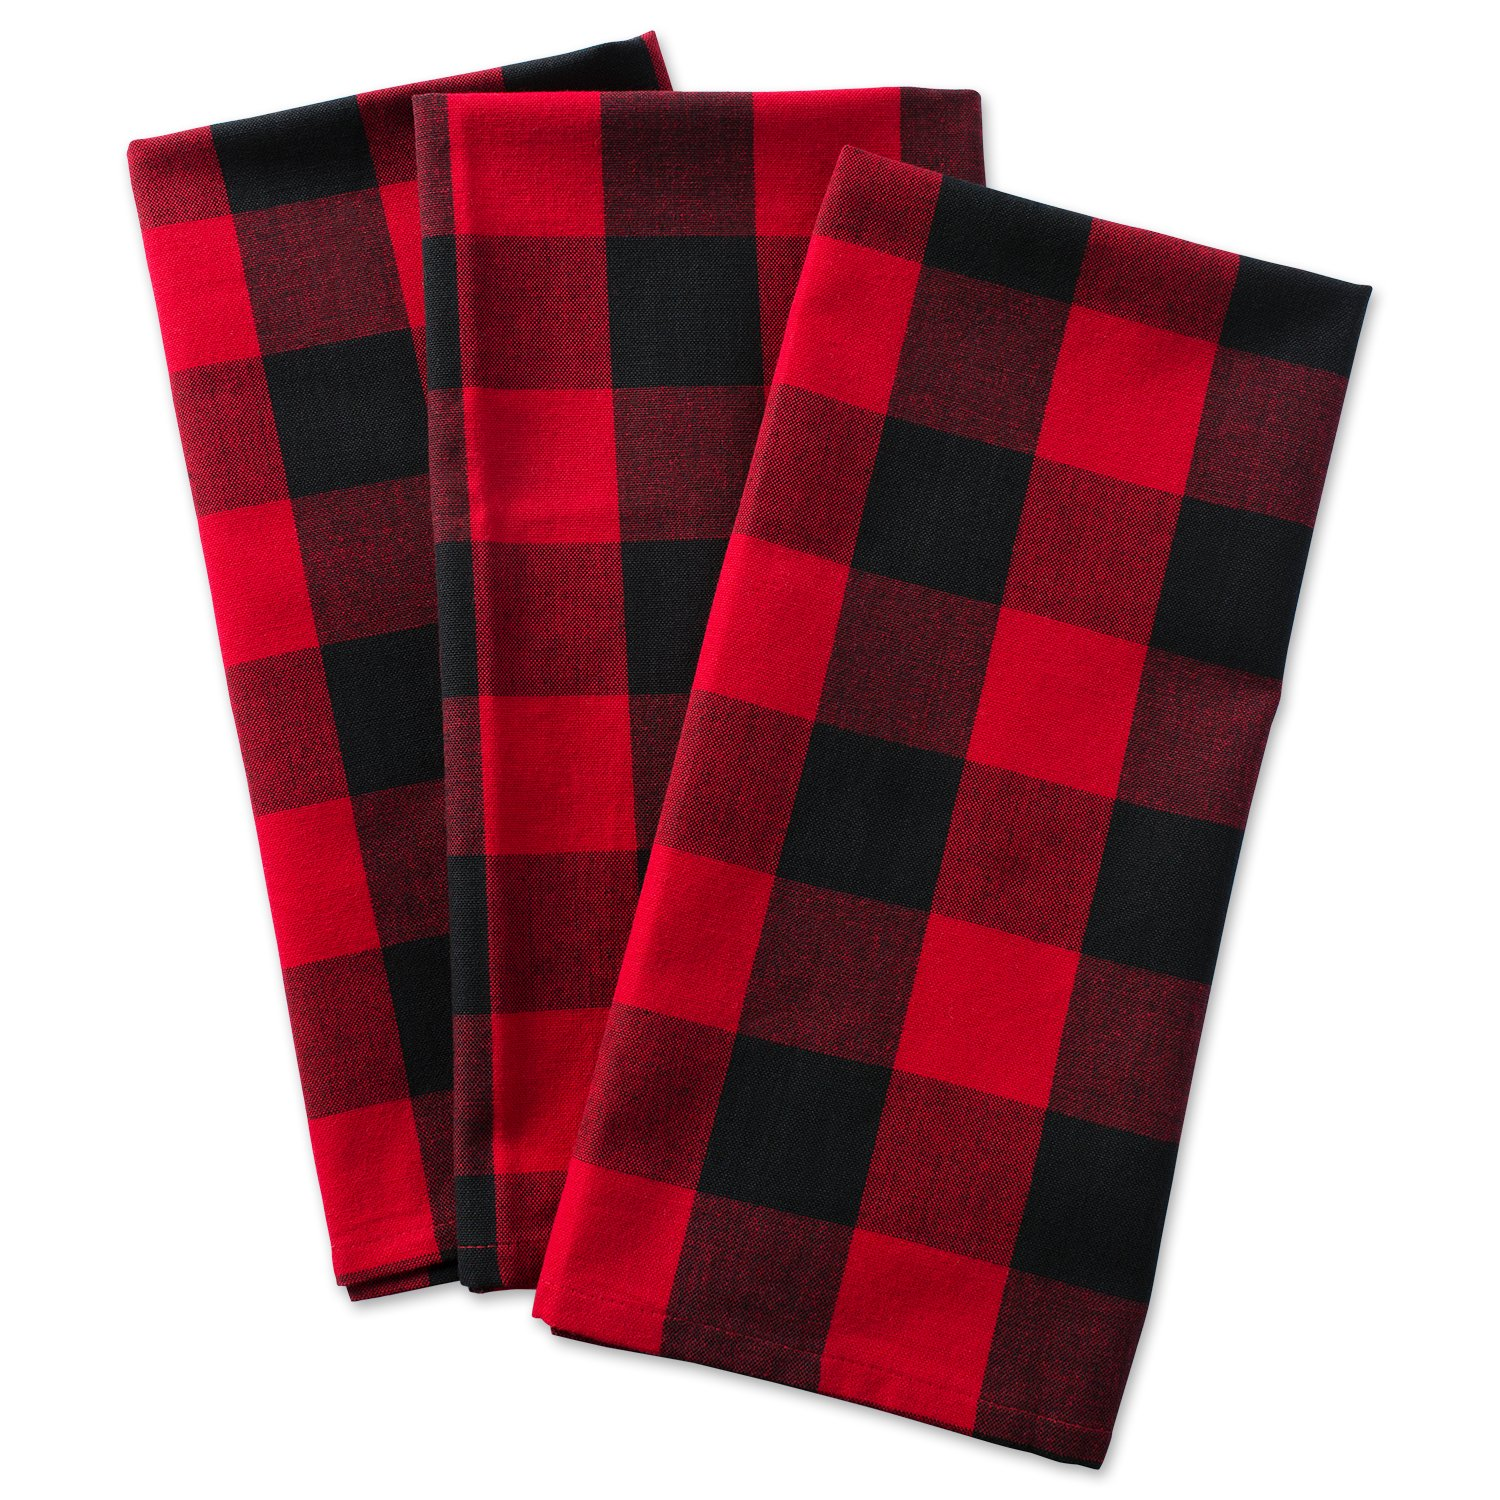 DII Cotton Buffalo Check Plaid Dish Towels, (20x30, Set of 3) Monogrammable Oversized Kitchen Towels for Drying, Cleaning, Cooking, Baking - Red & Black by DII